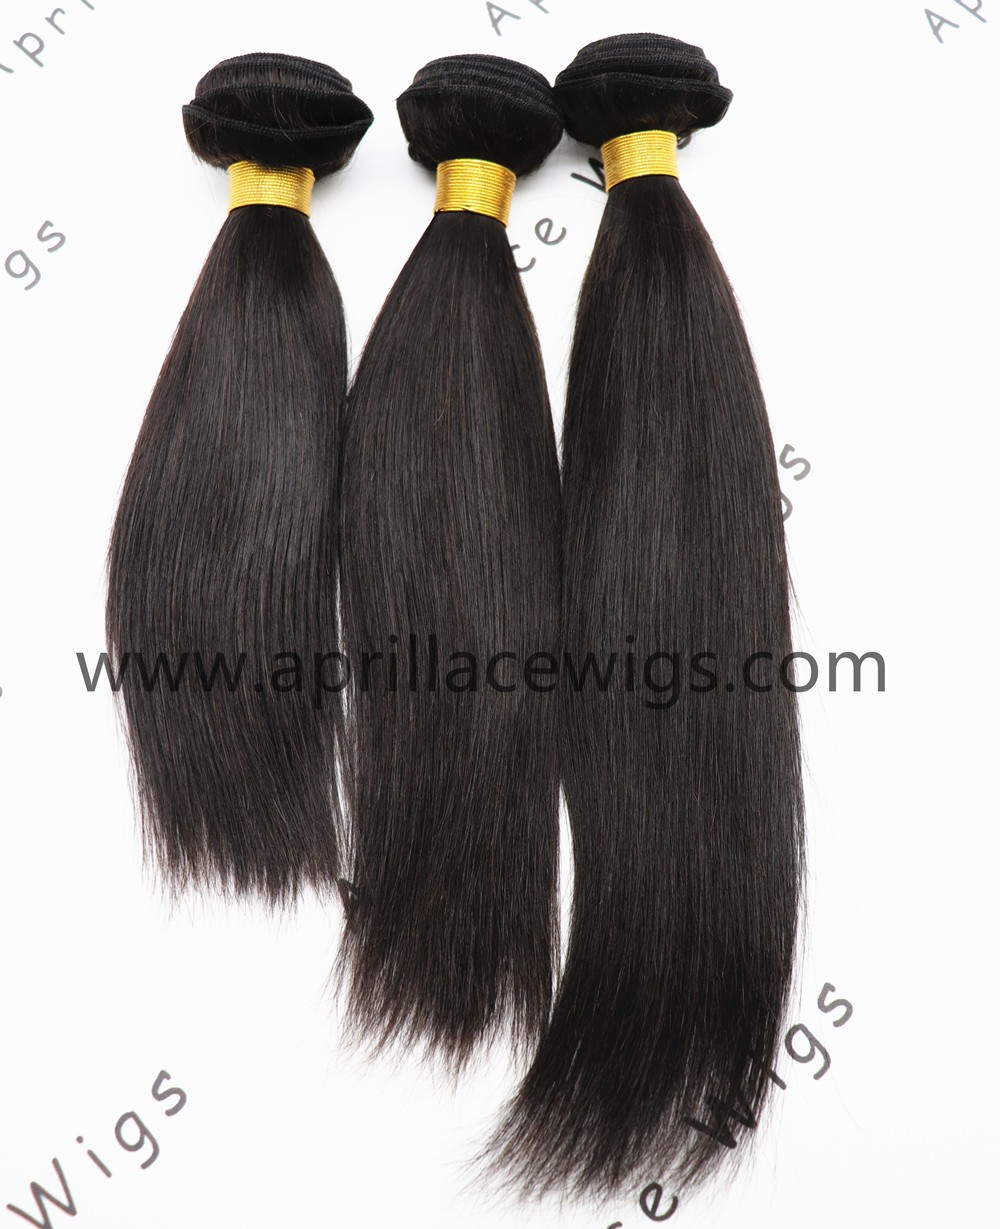 3 bundles deal, straight bundles, deep wave bundles, body wave bundles, curly bundles